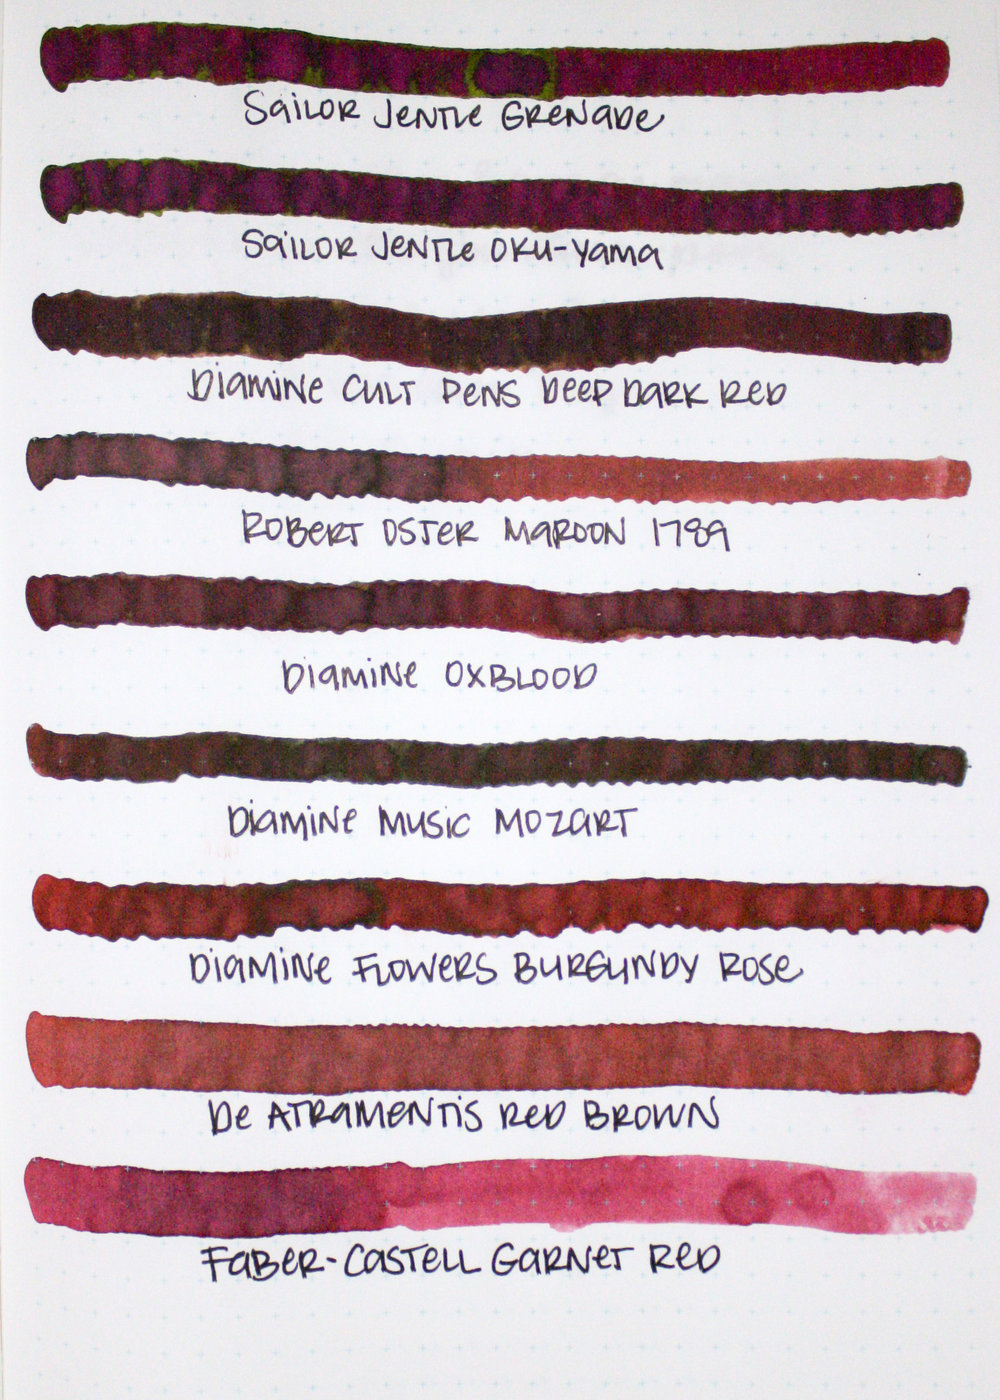 Similar inks... - The ink that looks the closes to Grenade is Sailor Jentle Oku-Yama (they are VERY similar). The next closest is Diamine Burgundy Rose, from the flowers set. It has a similar sheen, but is more red than Grenade and Oku-Yama.